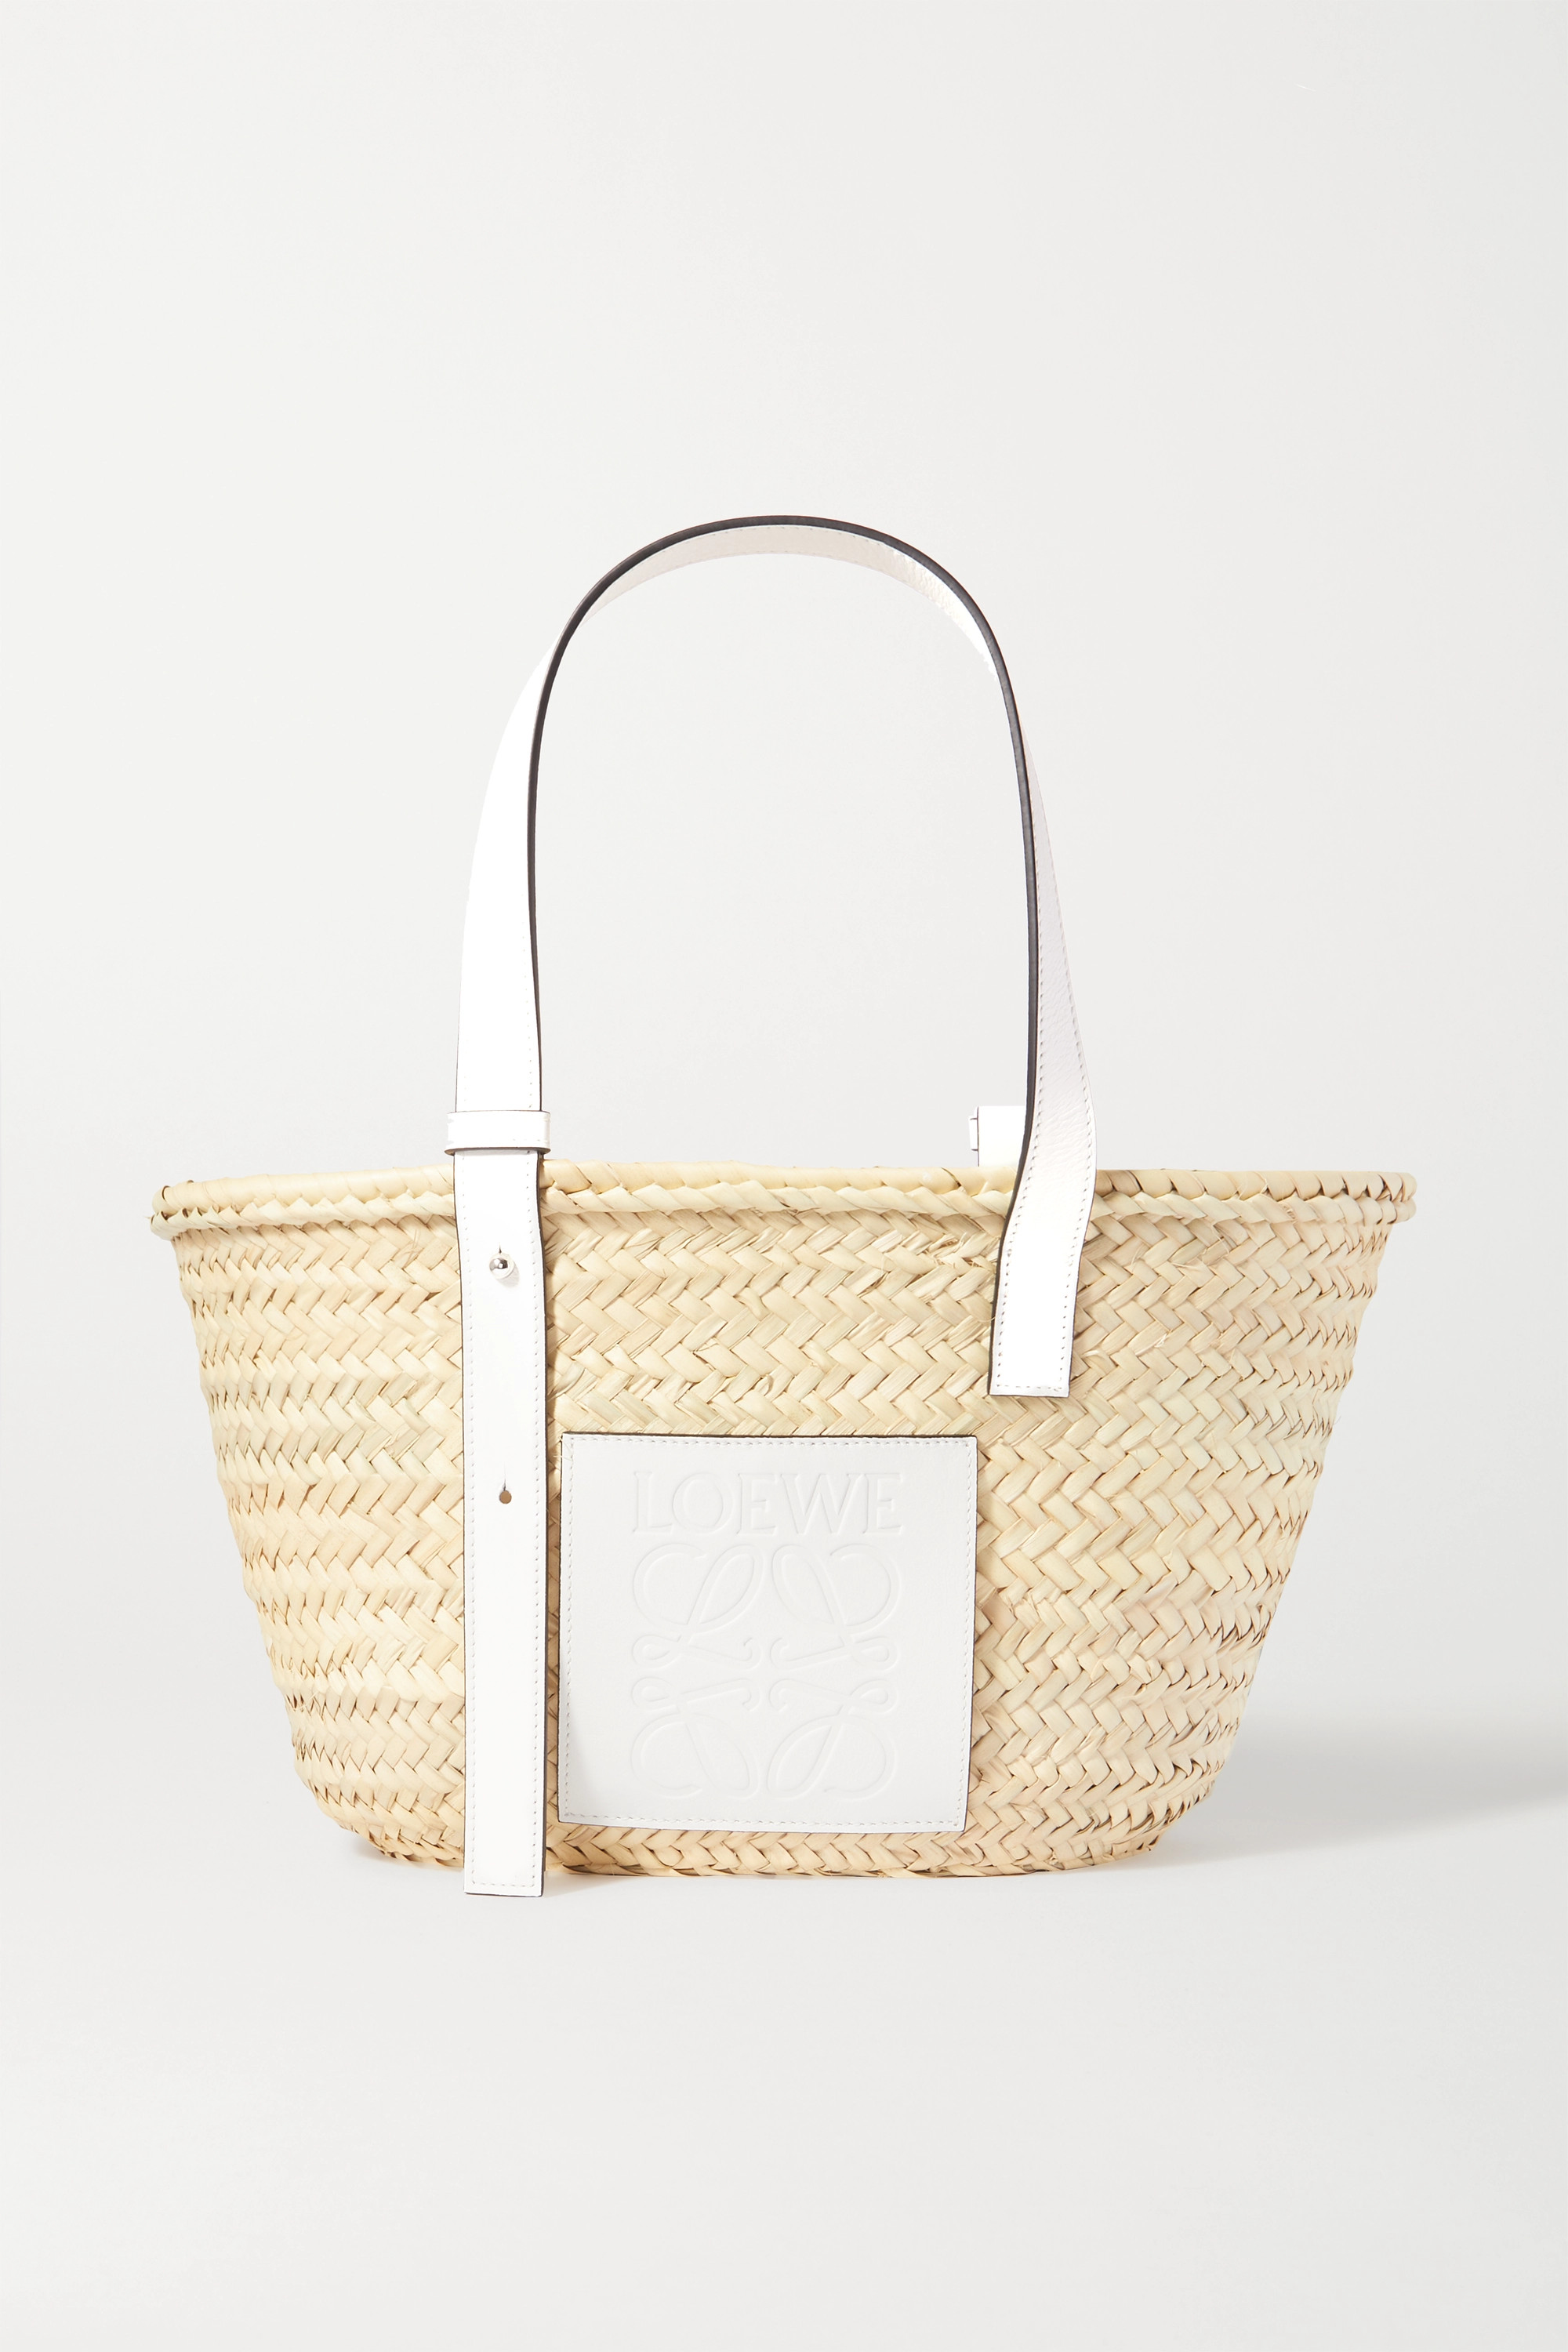 Mini Trend: Loewe's Leather-Trimmed Woven Raffia Tote